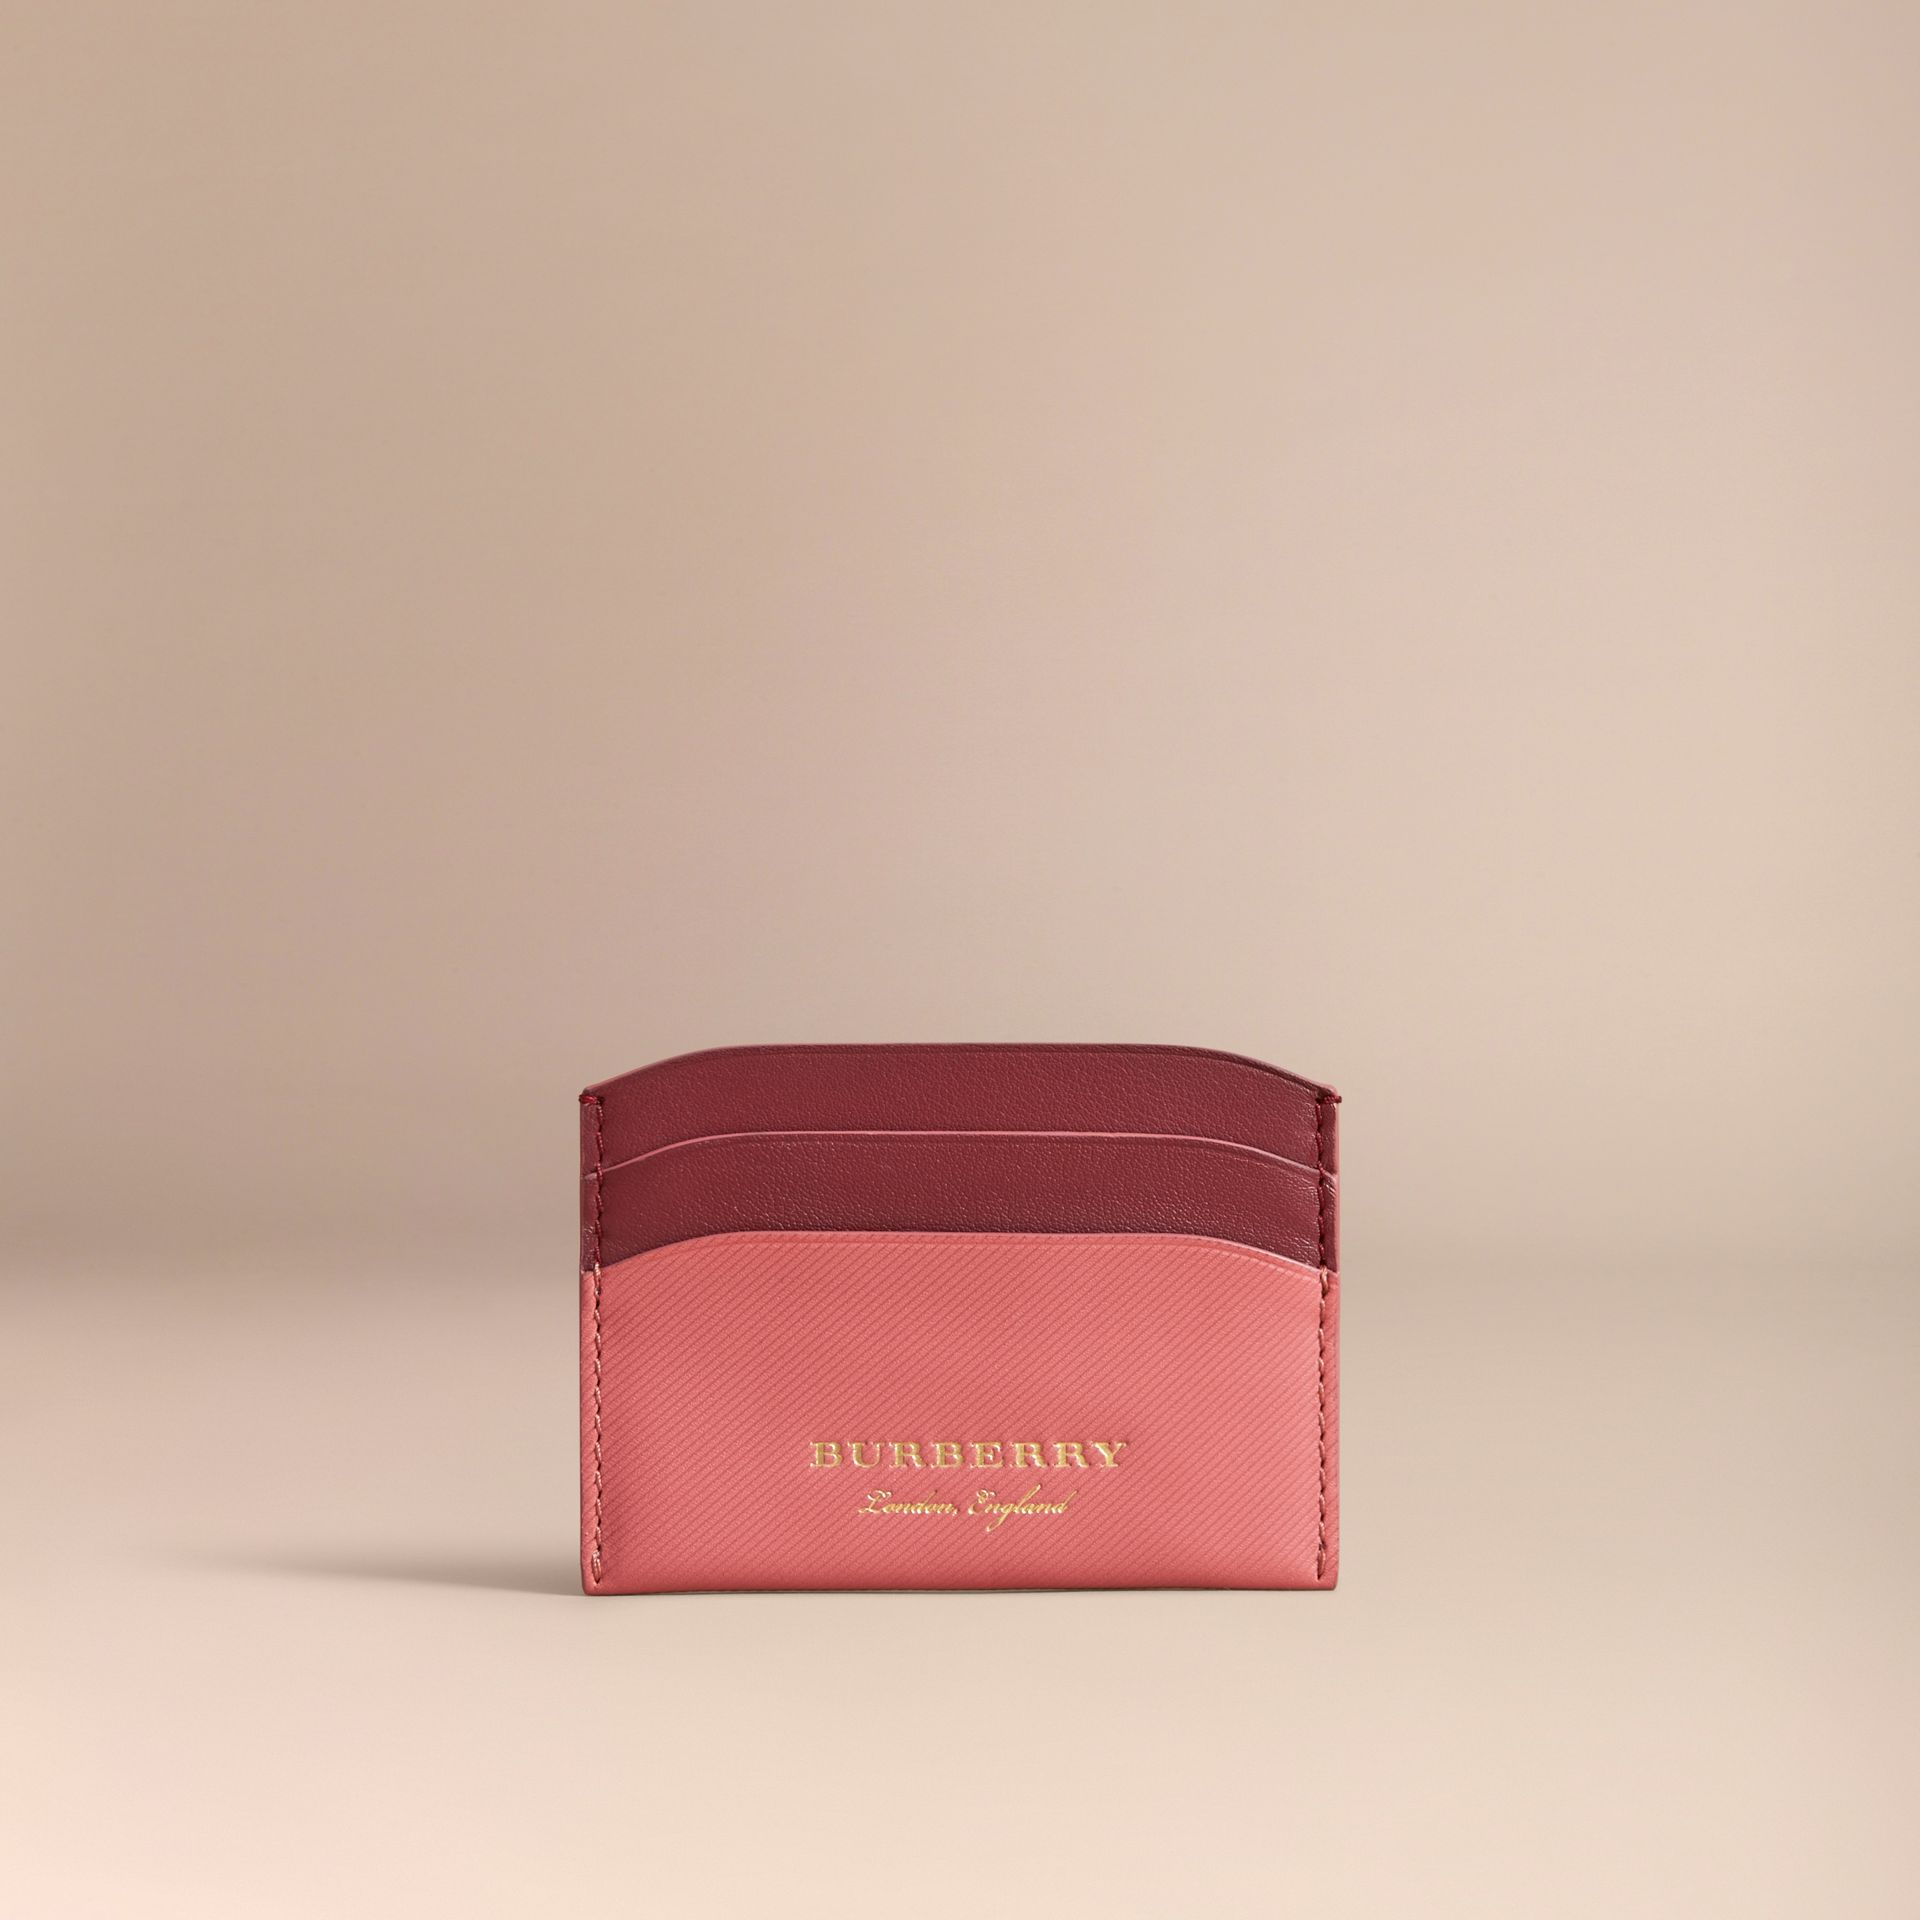 Two-tone Trench Leather Card Case in Blossom Pink/ Antique Red - Women | Burberry - gallery image 5